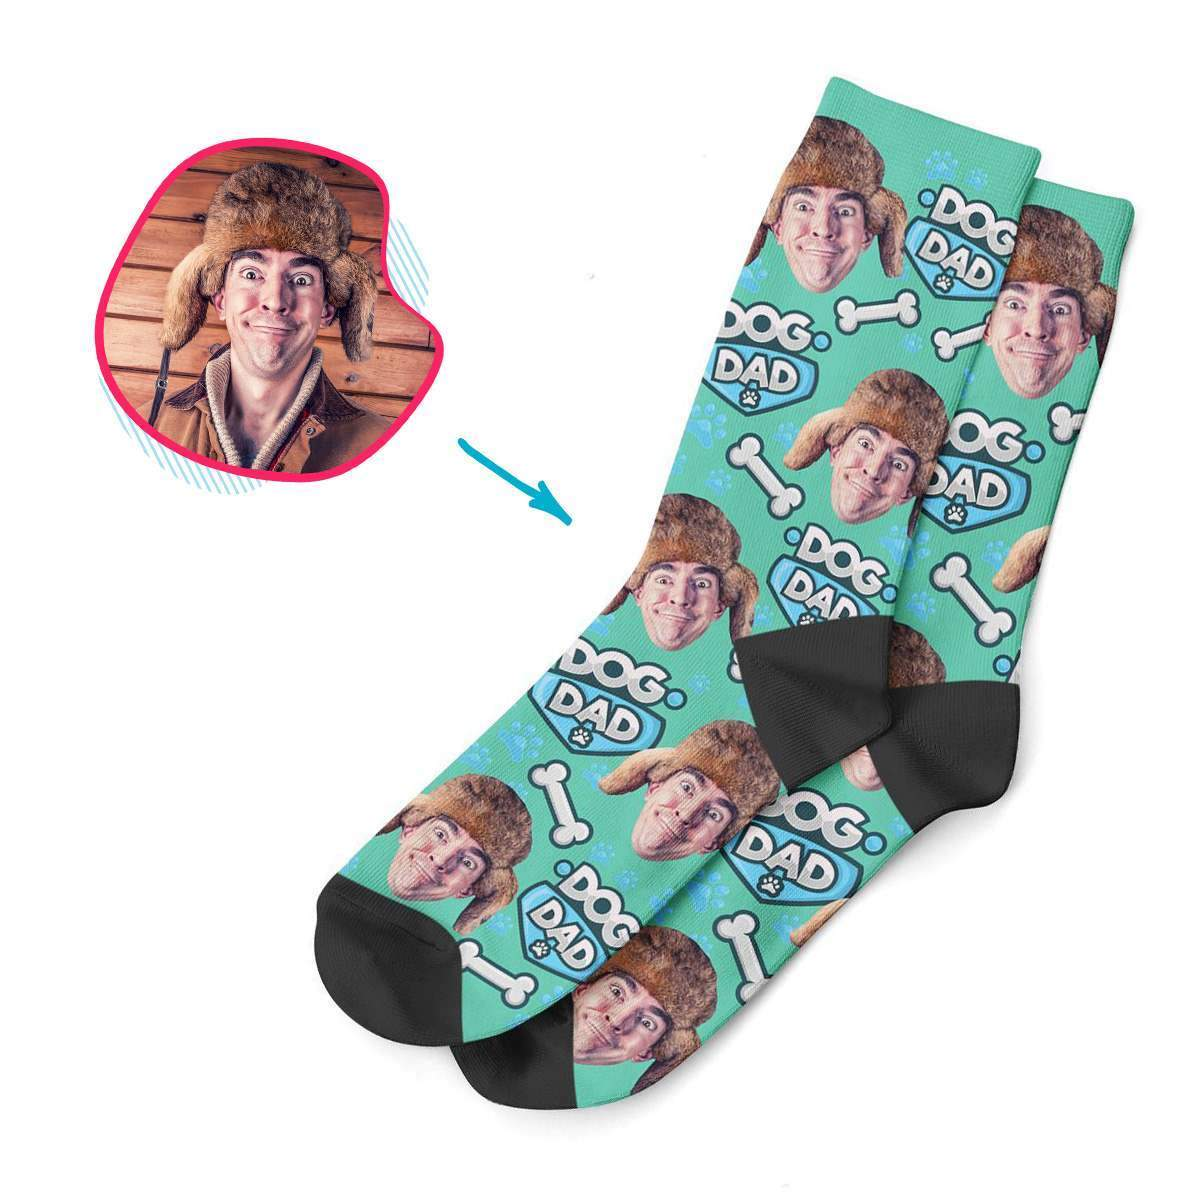 mint Dog Dad socks personalized with photo of face printed on them